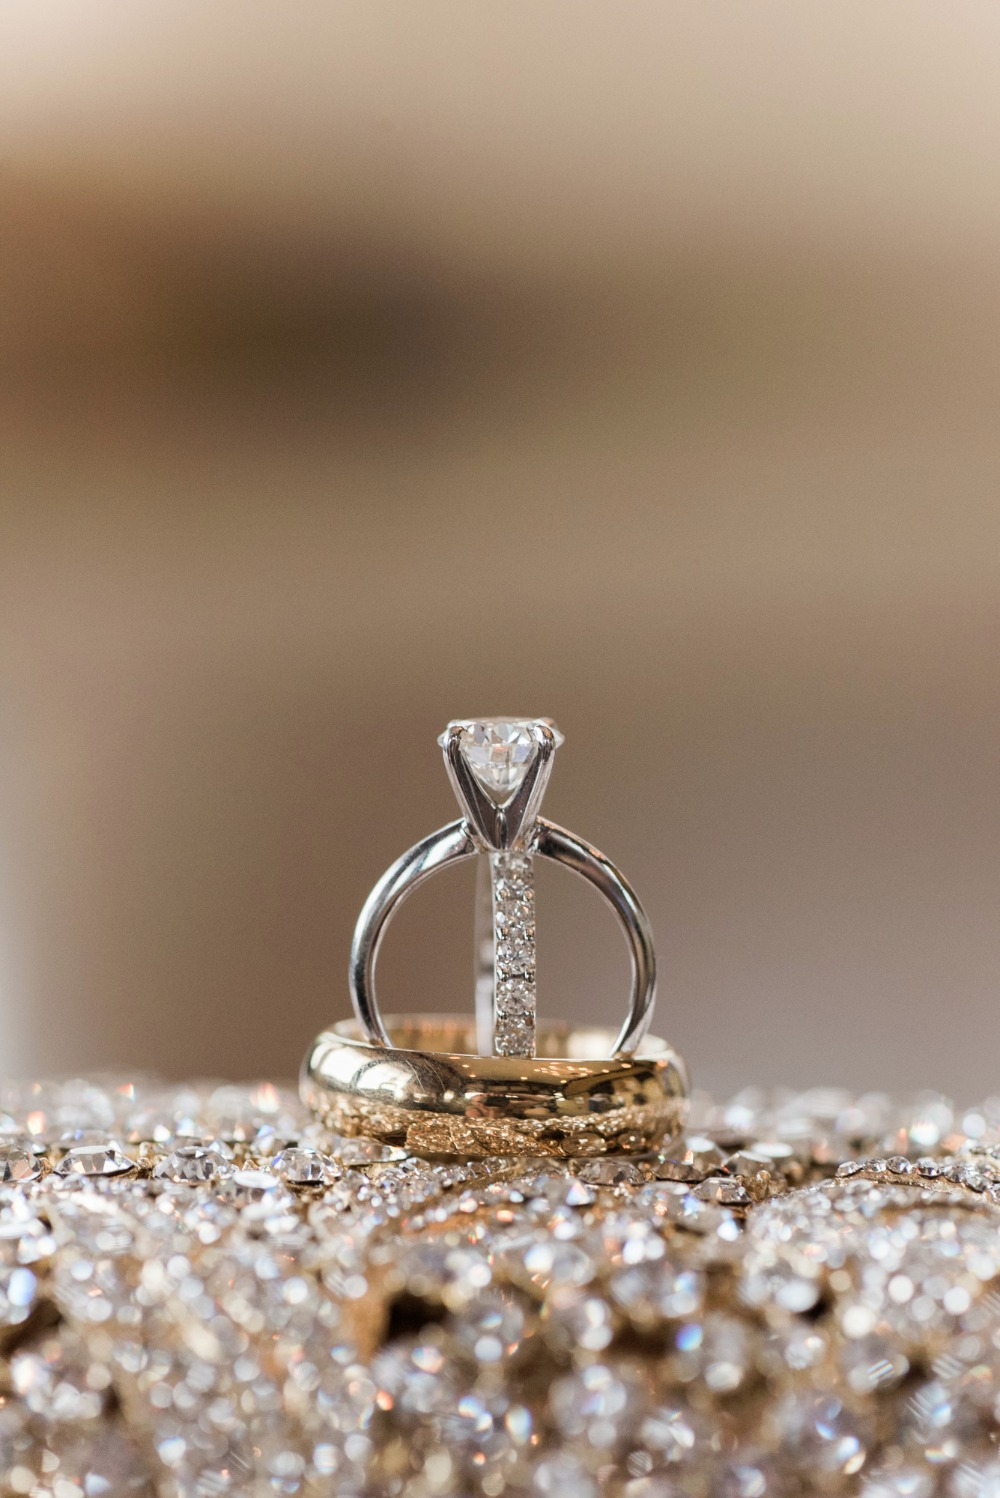 Cool ring photo